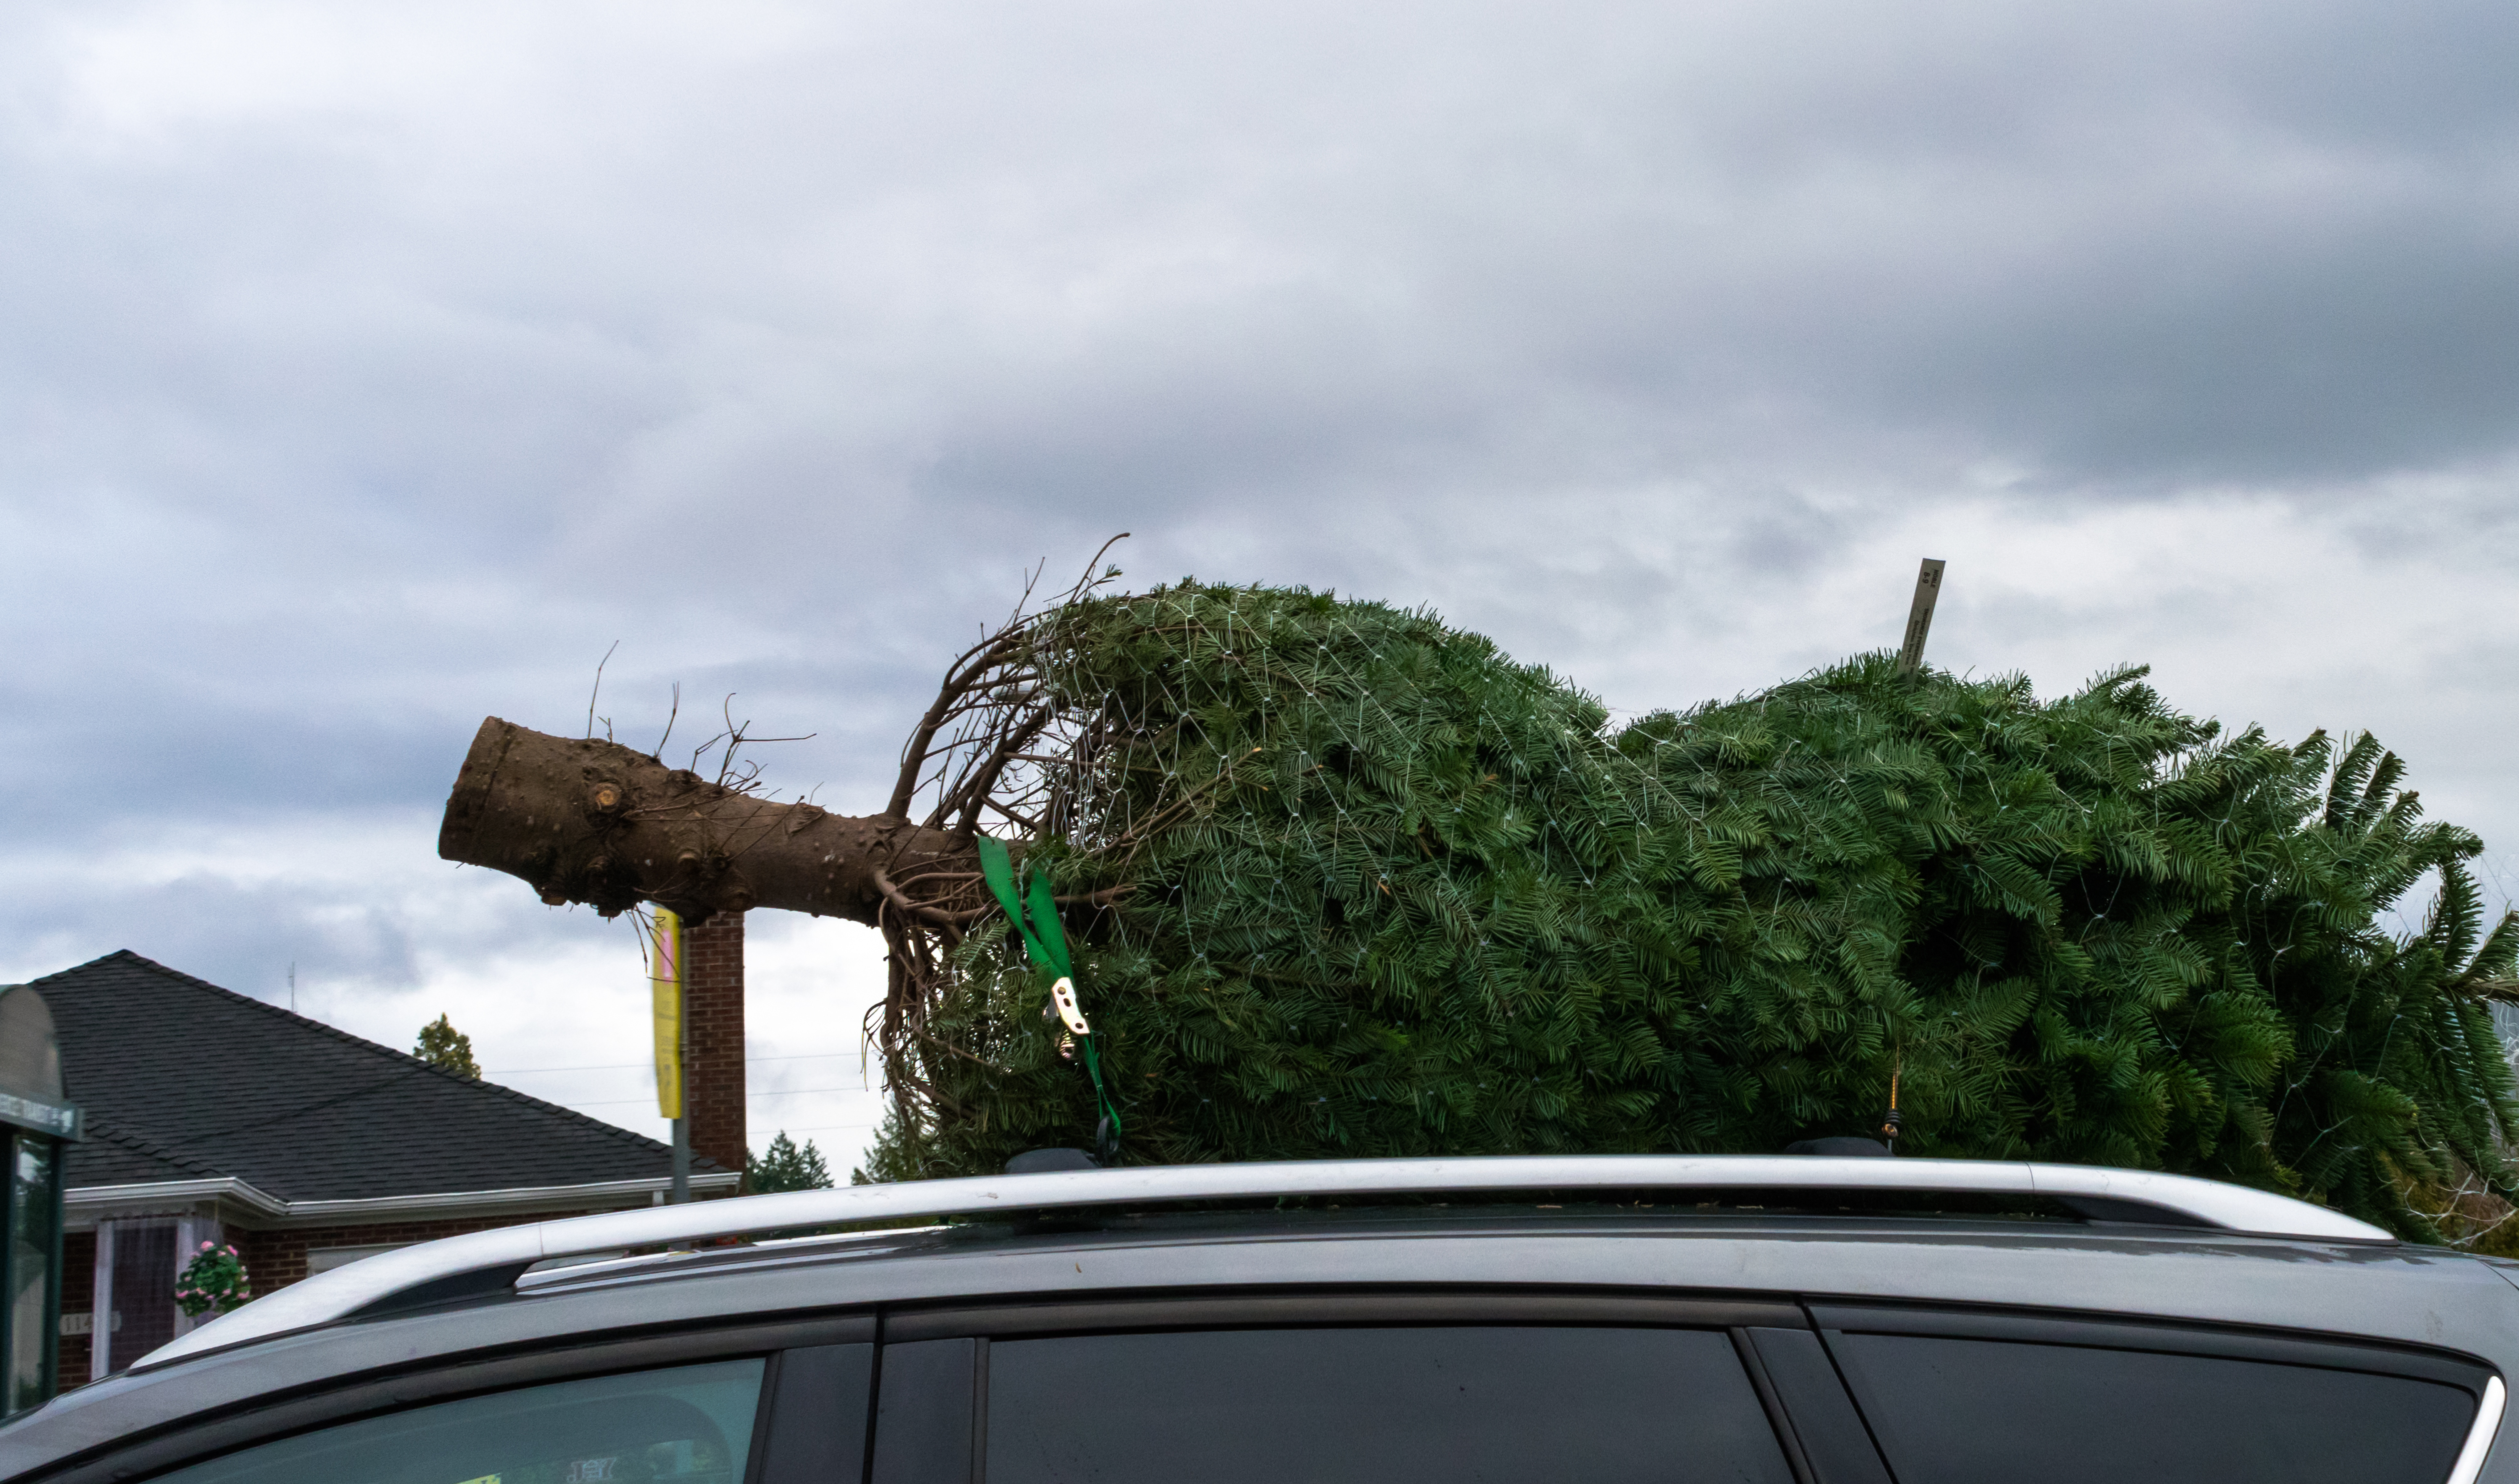 A Christmas tree on top of a car